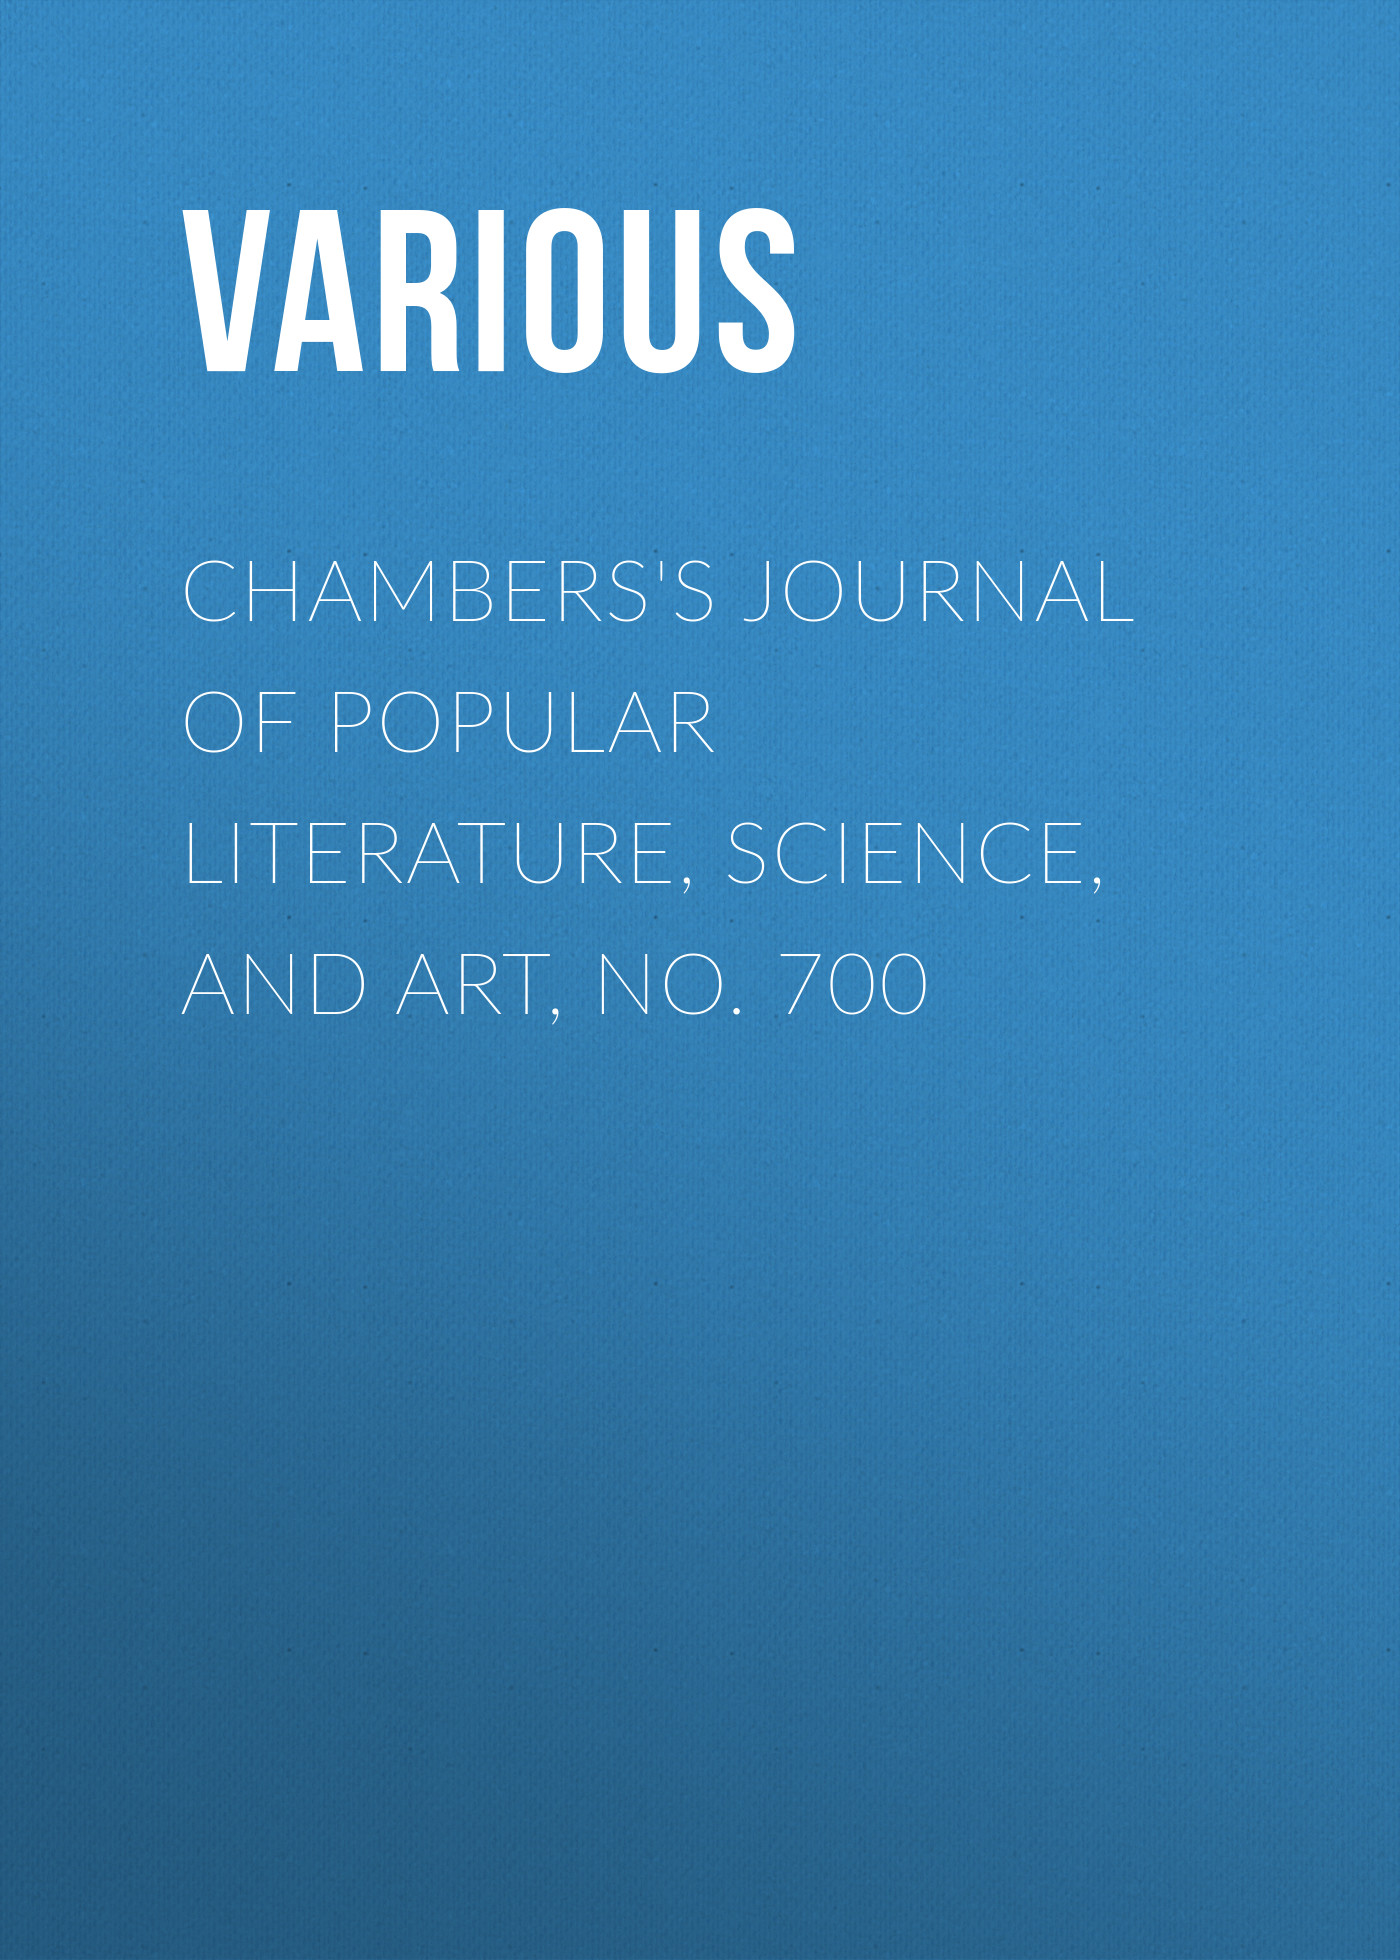 Chambers\'s Journal of Popular Literature, Science, and Art, No. 700 ( Various  )